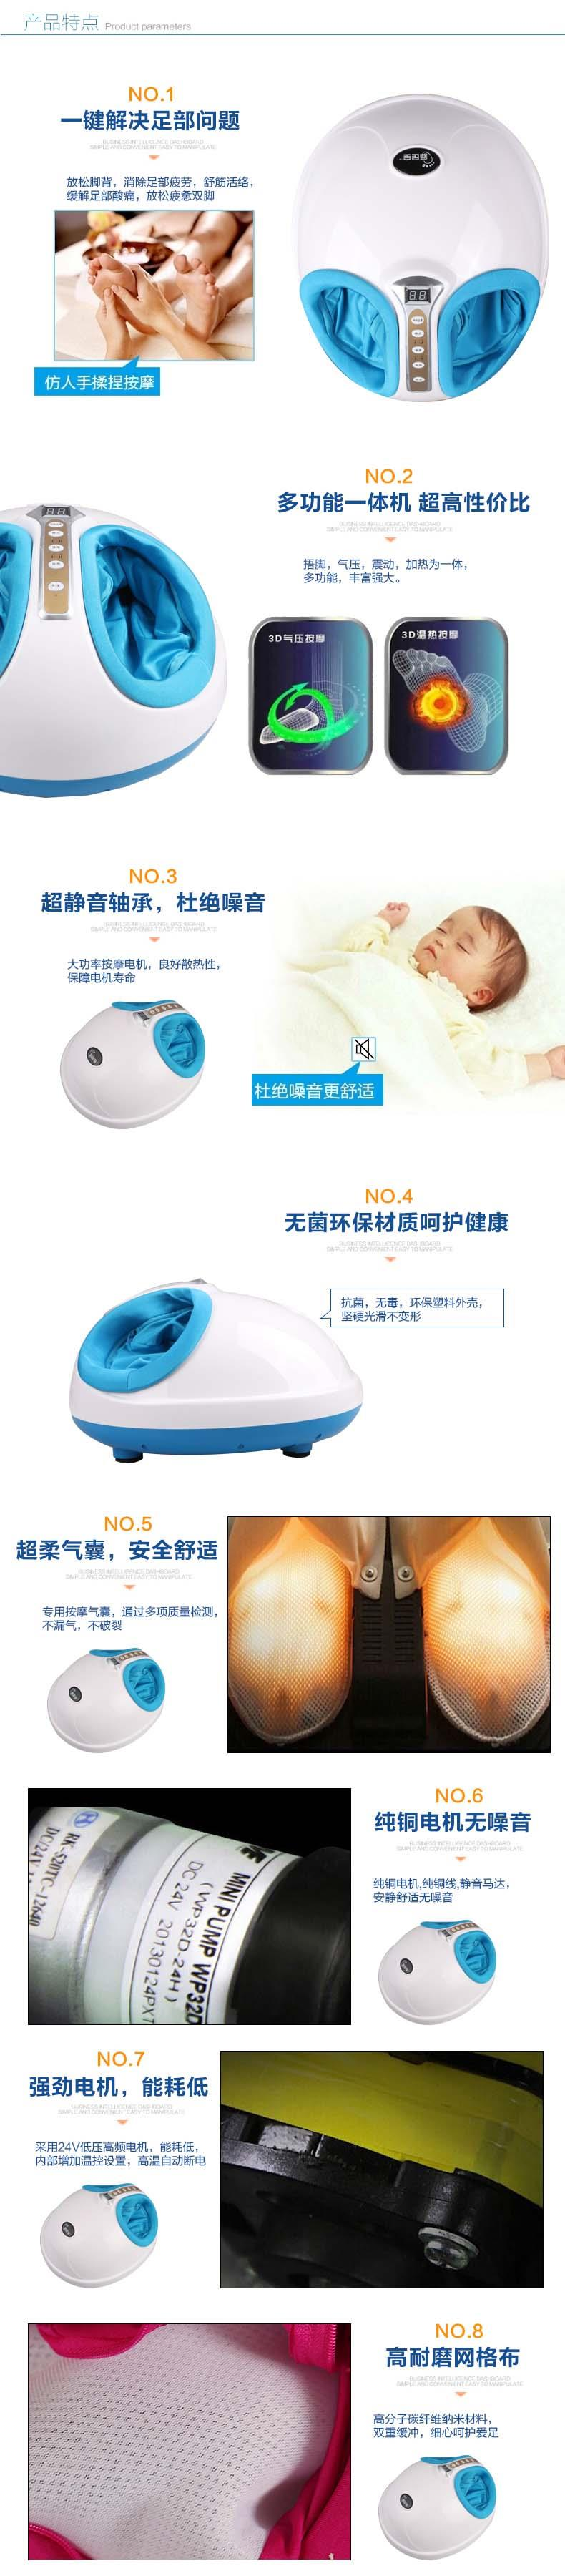 Taloha High Quality Foot Massager + Reflexology with Heating Function